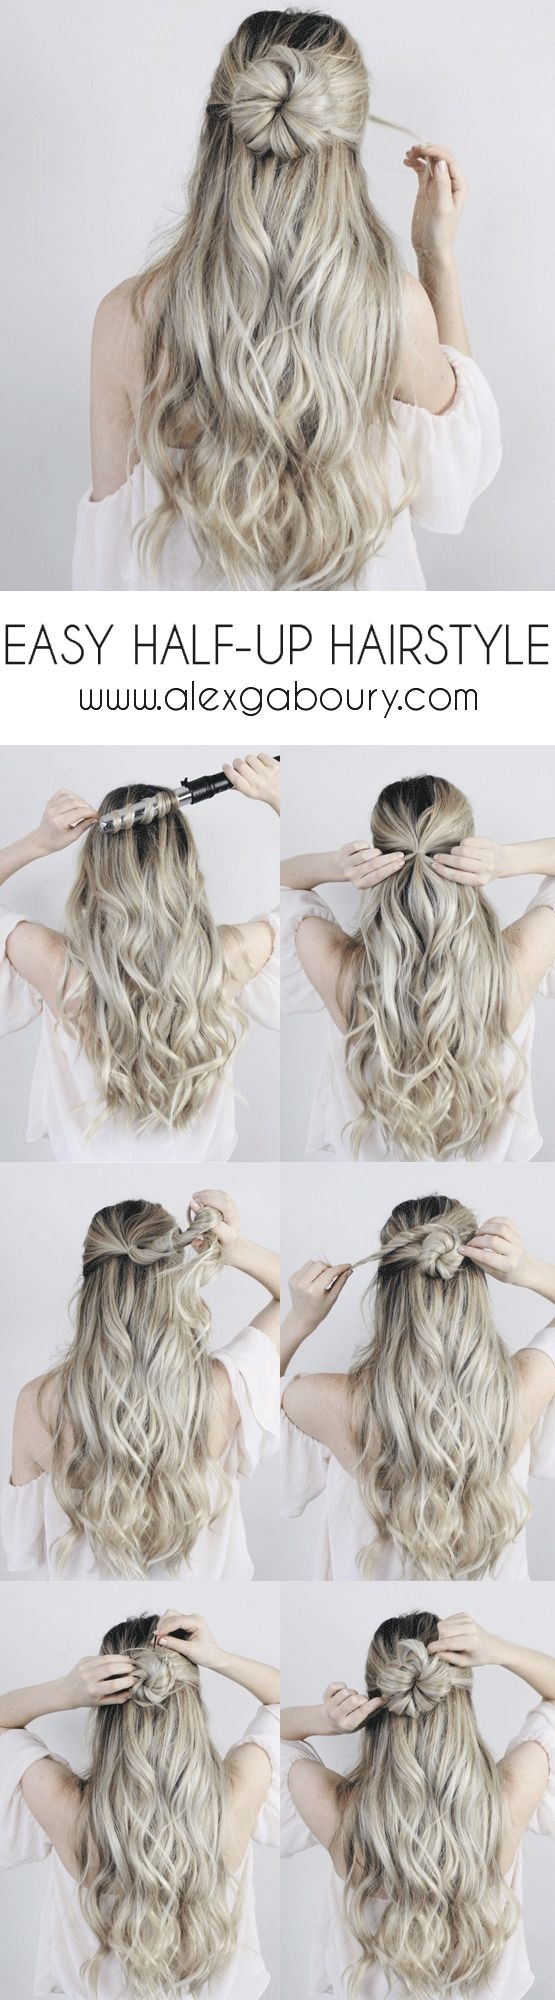 307 best upstyles images on Pinterest | Cute hairstyles, Hairstyle ...